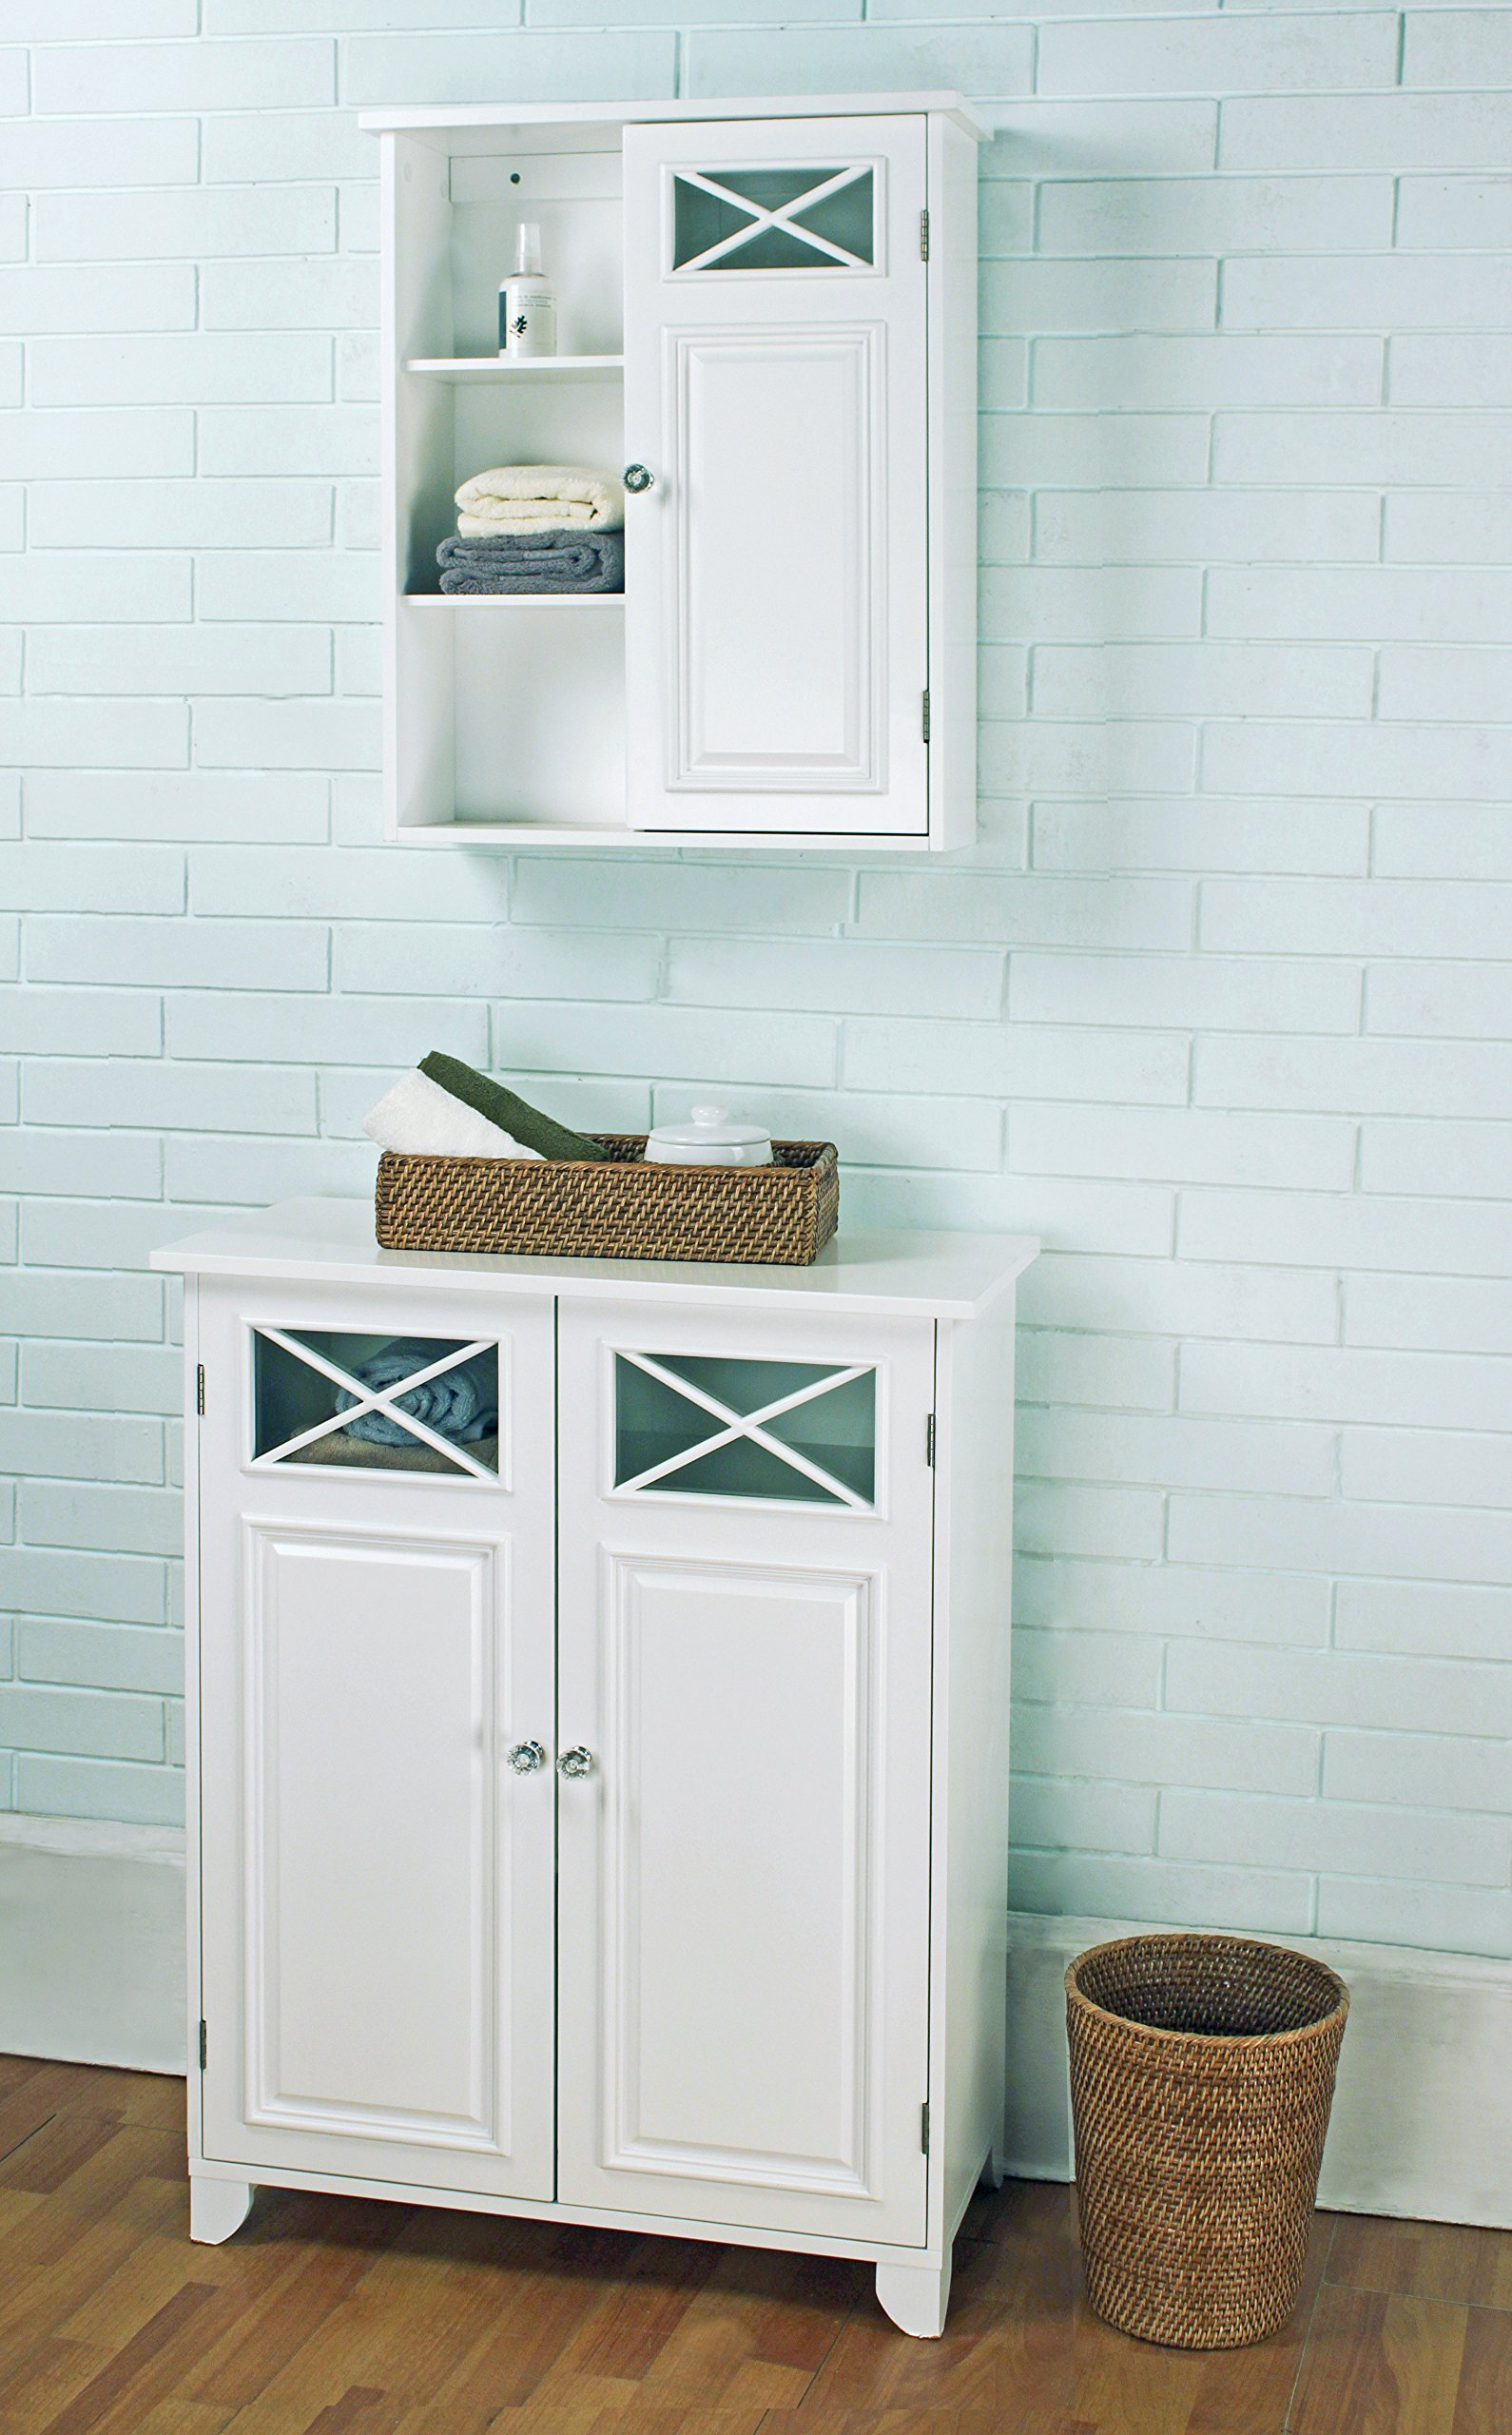 Elegant Home Fashions Dawson Collection Shelved Floor Cabinet, White by Elegant Home Fashions (Image #4)